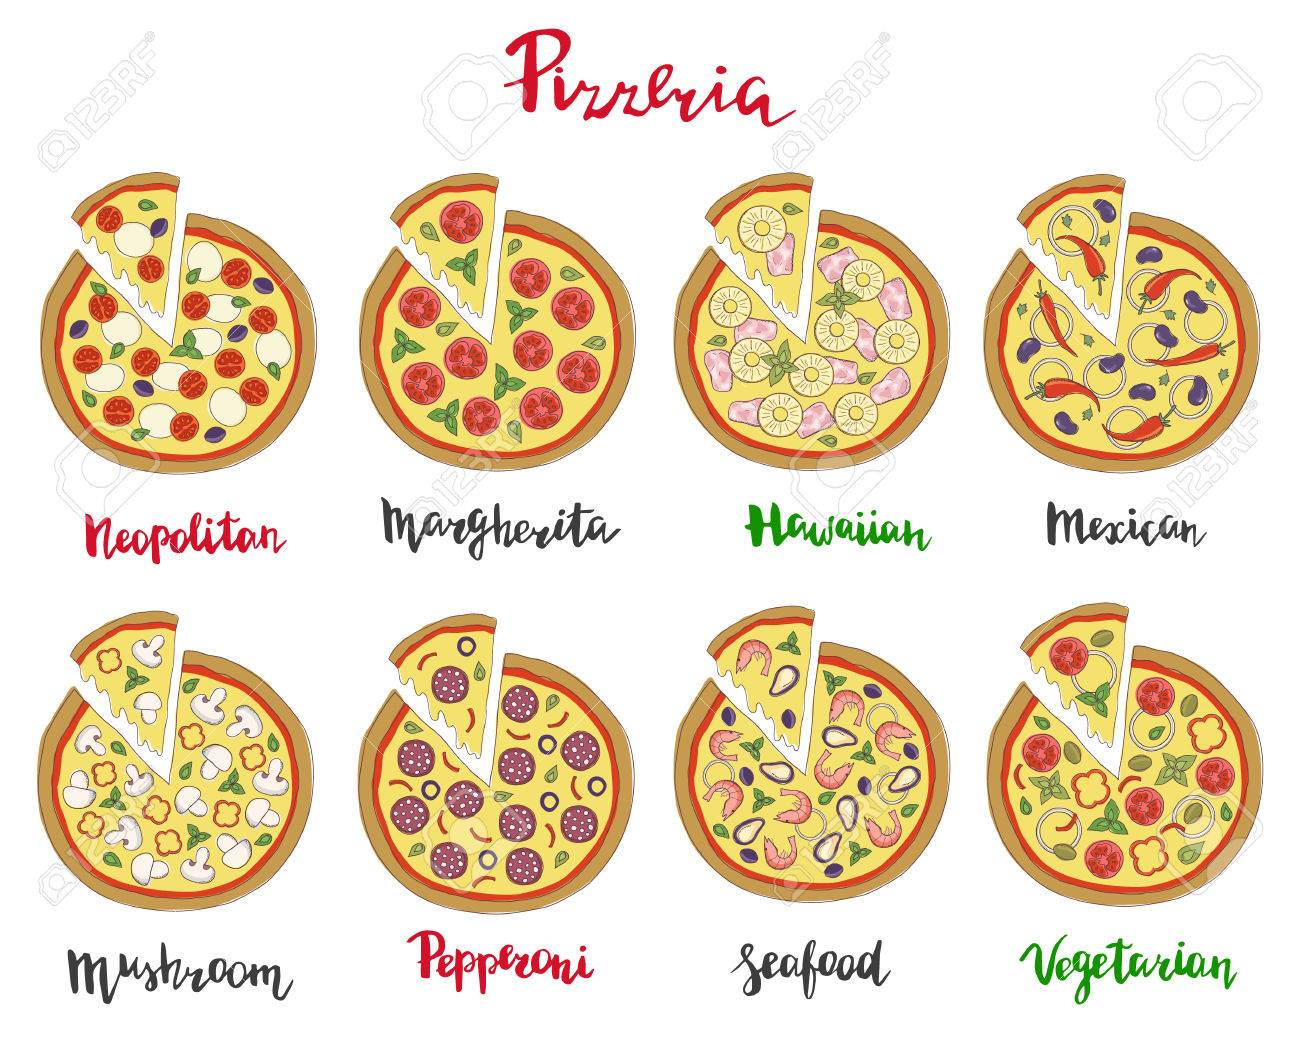 Vector Set Of Hand Drawn Pizza Popular Varieties Margarita Neapolitan Pepperoni Mexican